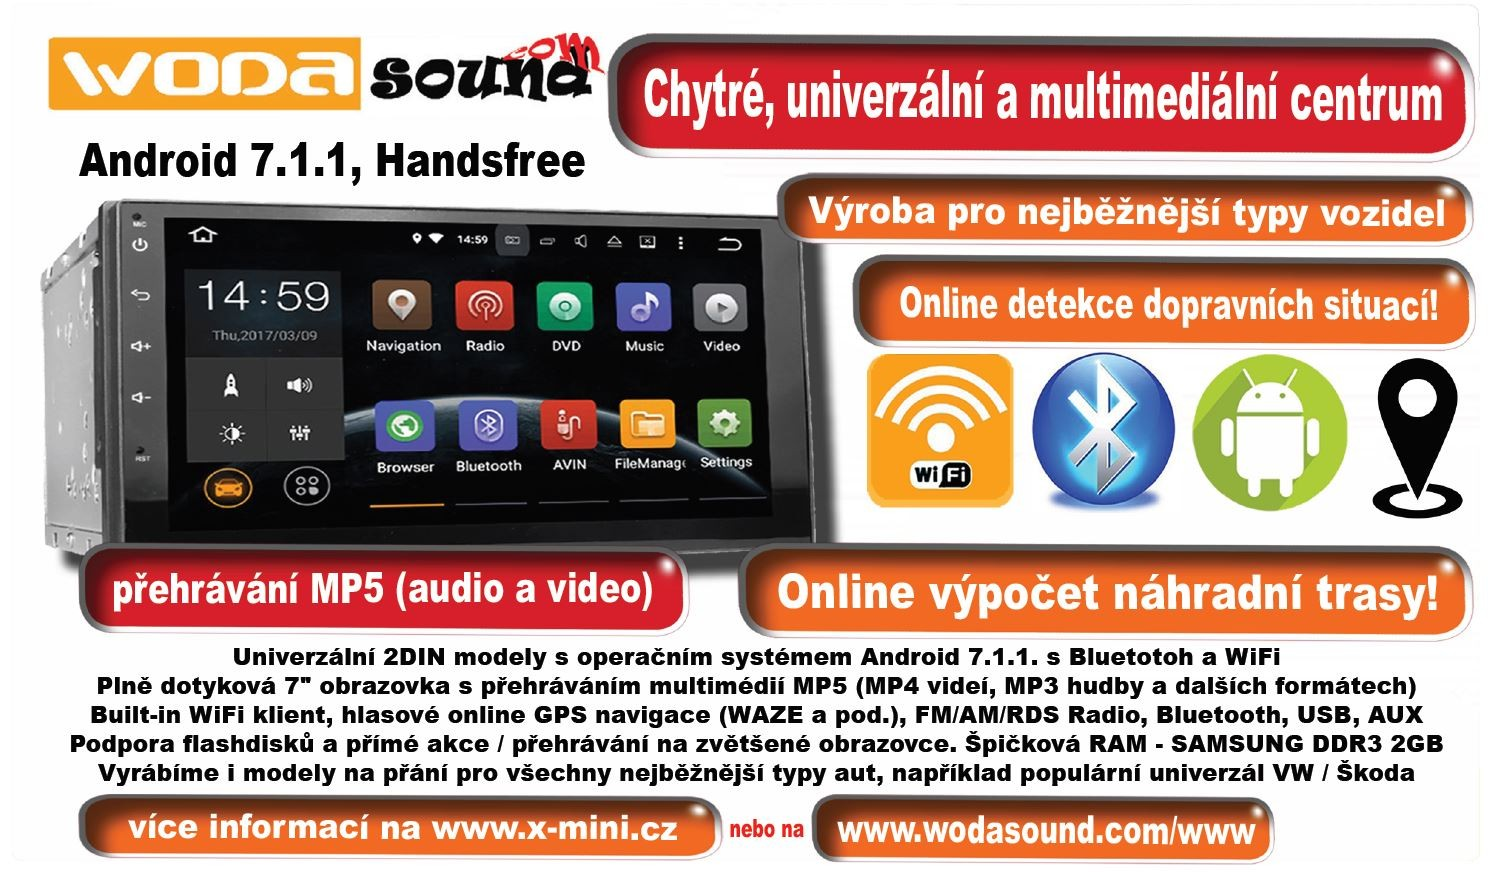 2DIN Universal smart multimedia centrum for your car with Androind 7.1